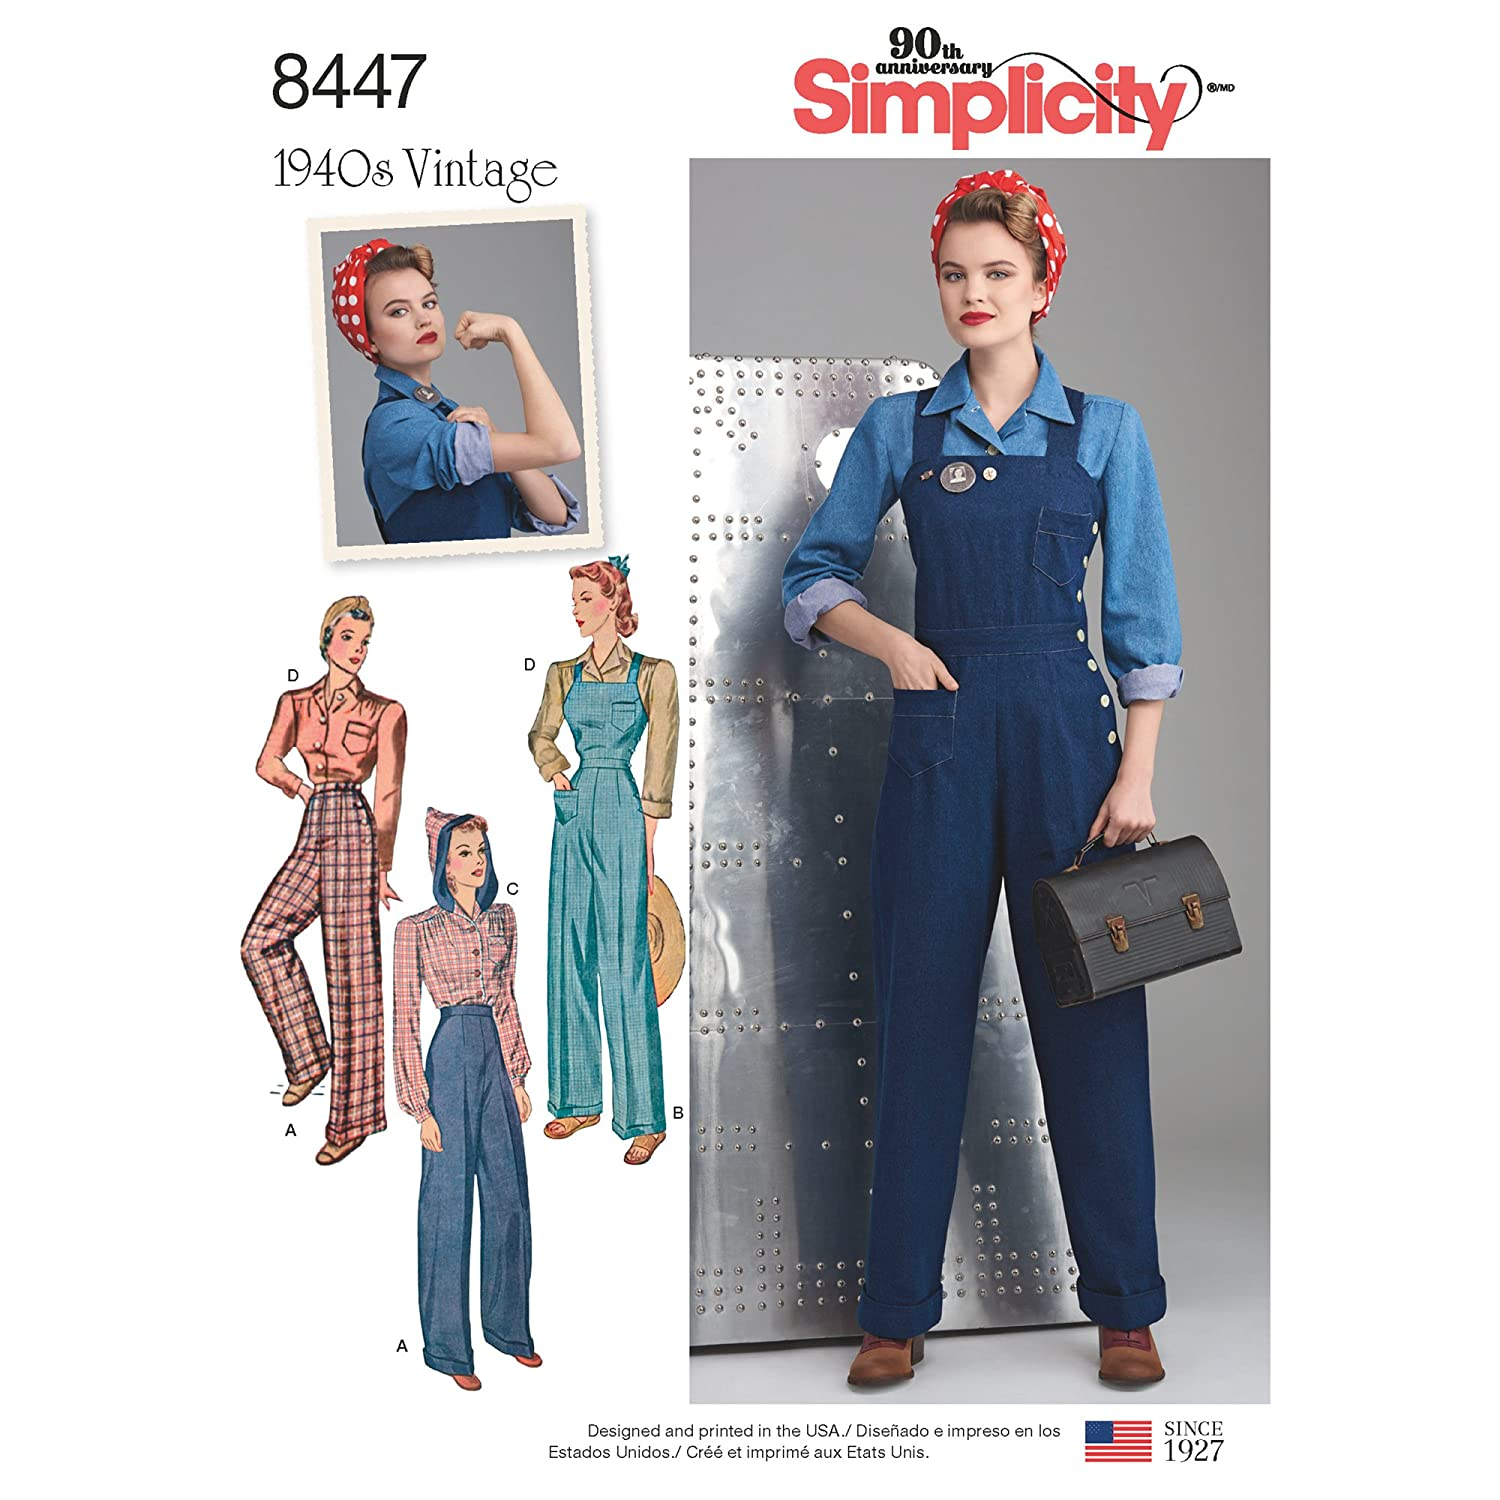 1940s Sewing Patterns – Dresses, Overalls, Lingerie etc Simplicity Pattern 8447 H5 Misses 1940s Vintage Pants Overalls and Blouses Size 6-8-10-12-14 $10.99 AT vintagedancer.com